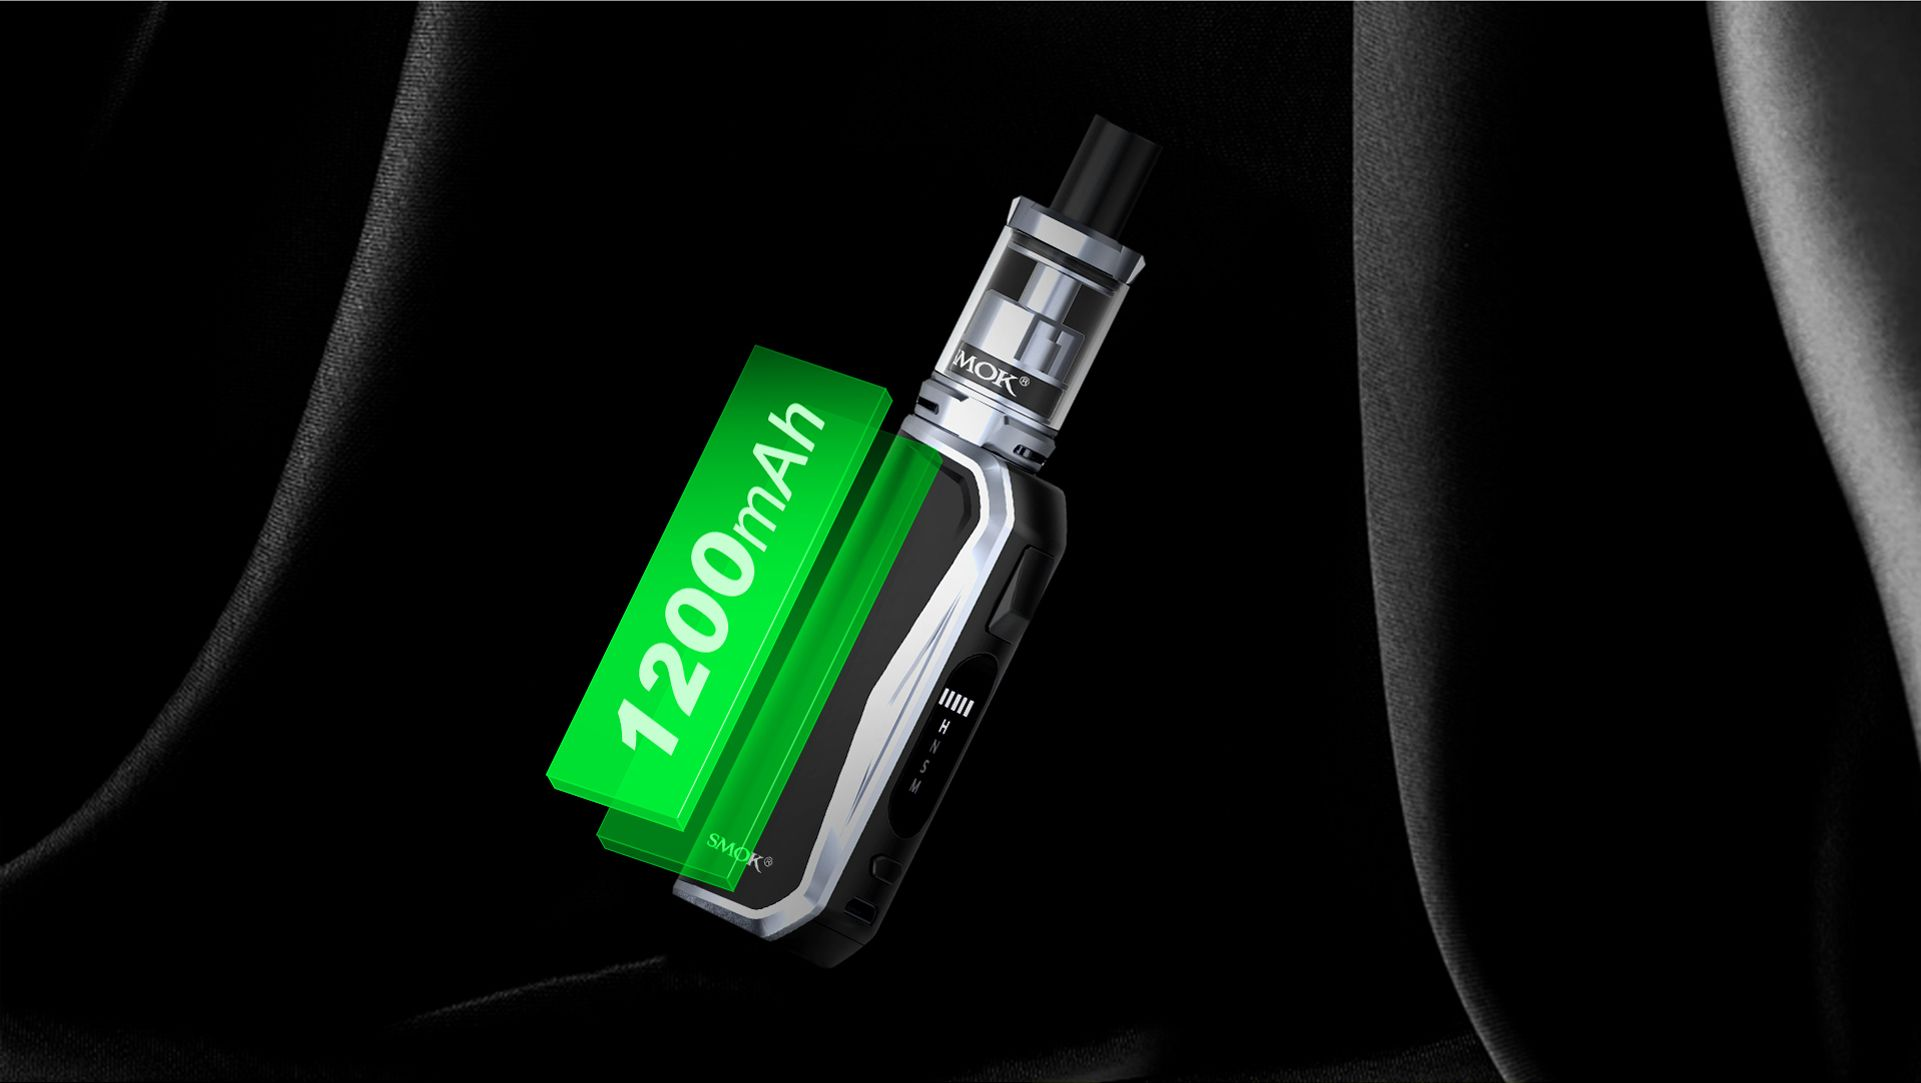 smok priv n19 kit device battery life 1100mah